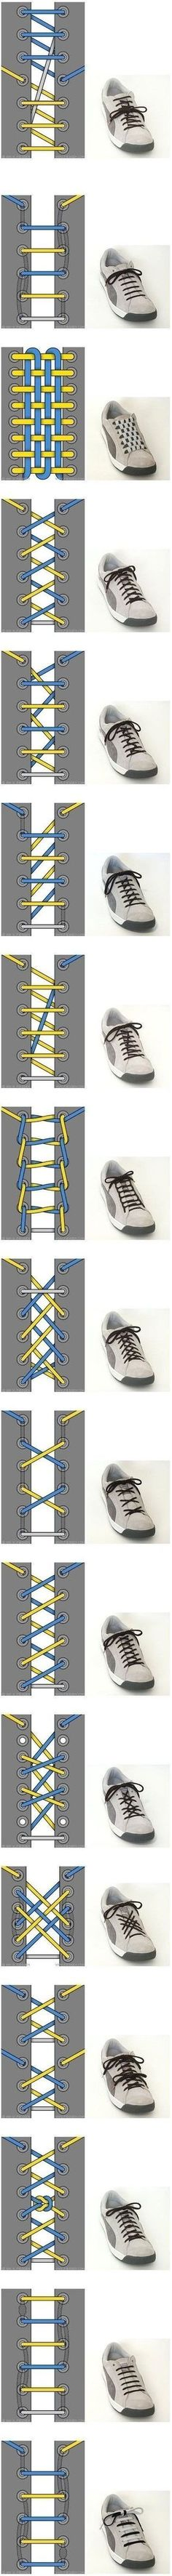 to tie a shoe! I love this. I always did tie my shoes different.♞ now i can teach my kids.☺